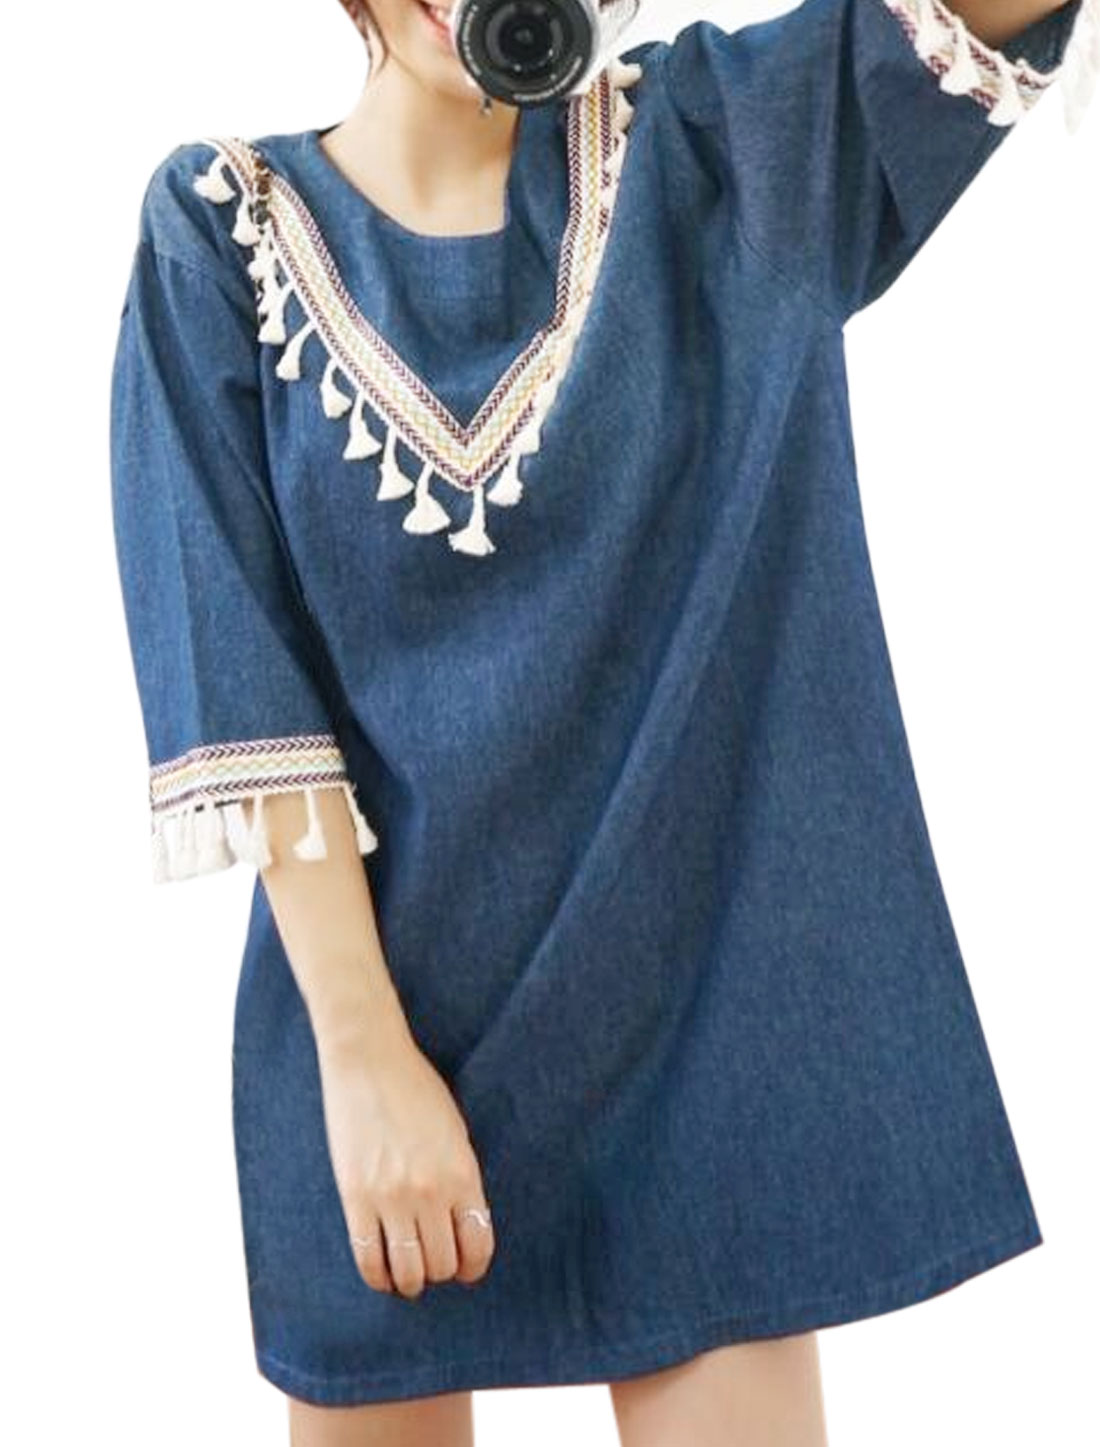 Women Floral Embroidered Tassels Decor Loose Tunic Dress Blue XS